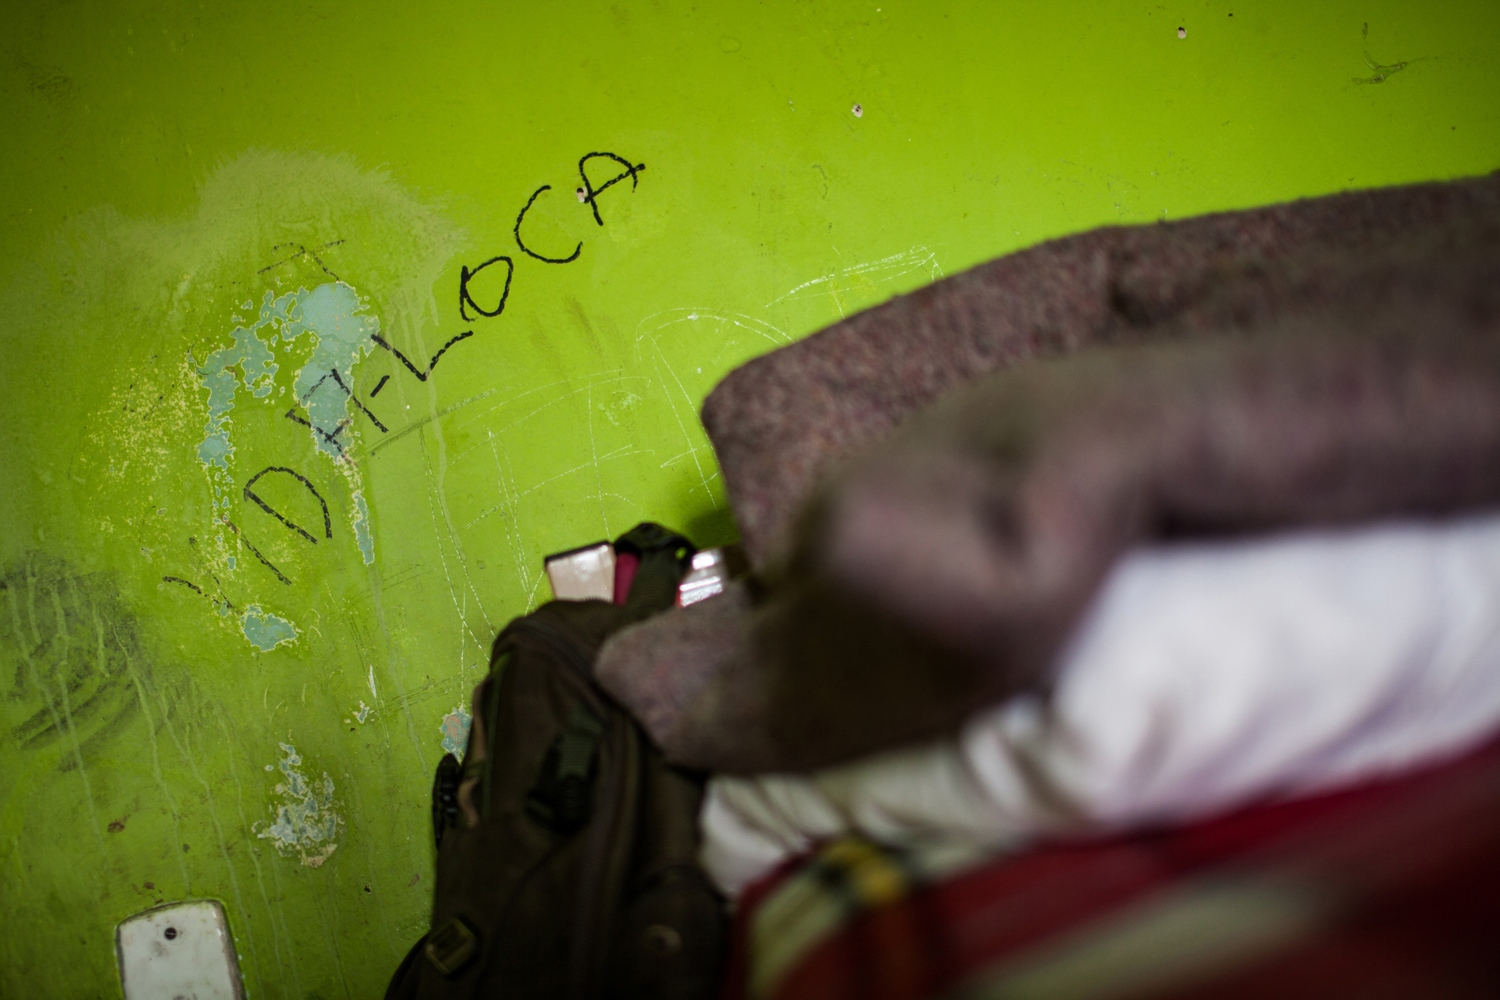 "A graffiti that says ""vida loca"" (crazy life) painted in a De Braços Abertos hotel room. Despite the heavy government intervention, drug traffickers still control much of everyday life in Cracôlandia. For instance, the hotels are known to be rife with illegal activity. Though the hotels are sponsored by the city, the police need warrants to enter – and almost never do. ""We all know [the hotels] are horrible places,"" said William Thomaz, lieutenant of Cracôlandia's military police unit. ""It's like 'don't ask, don't tell'."